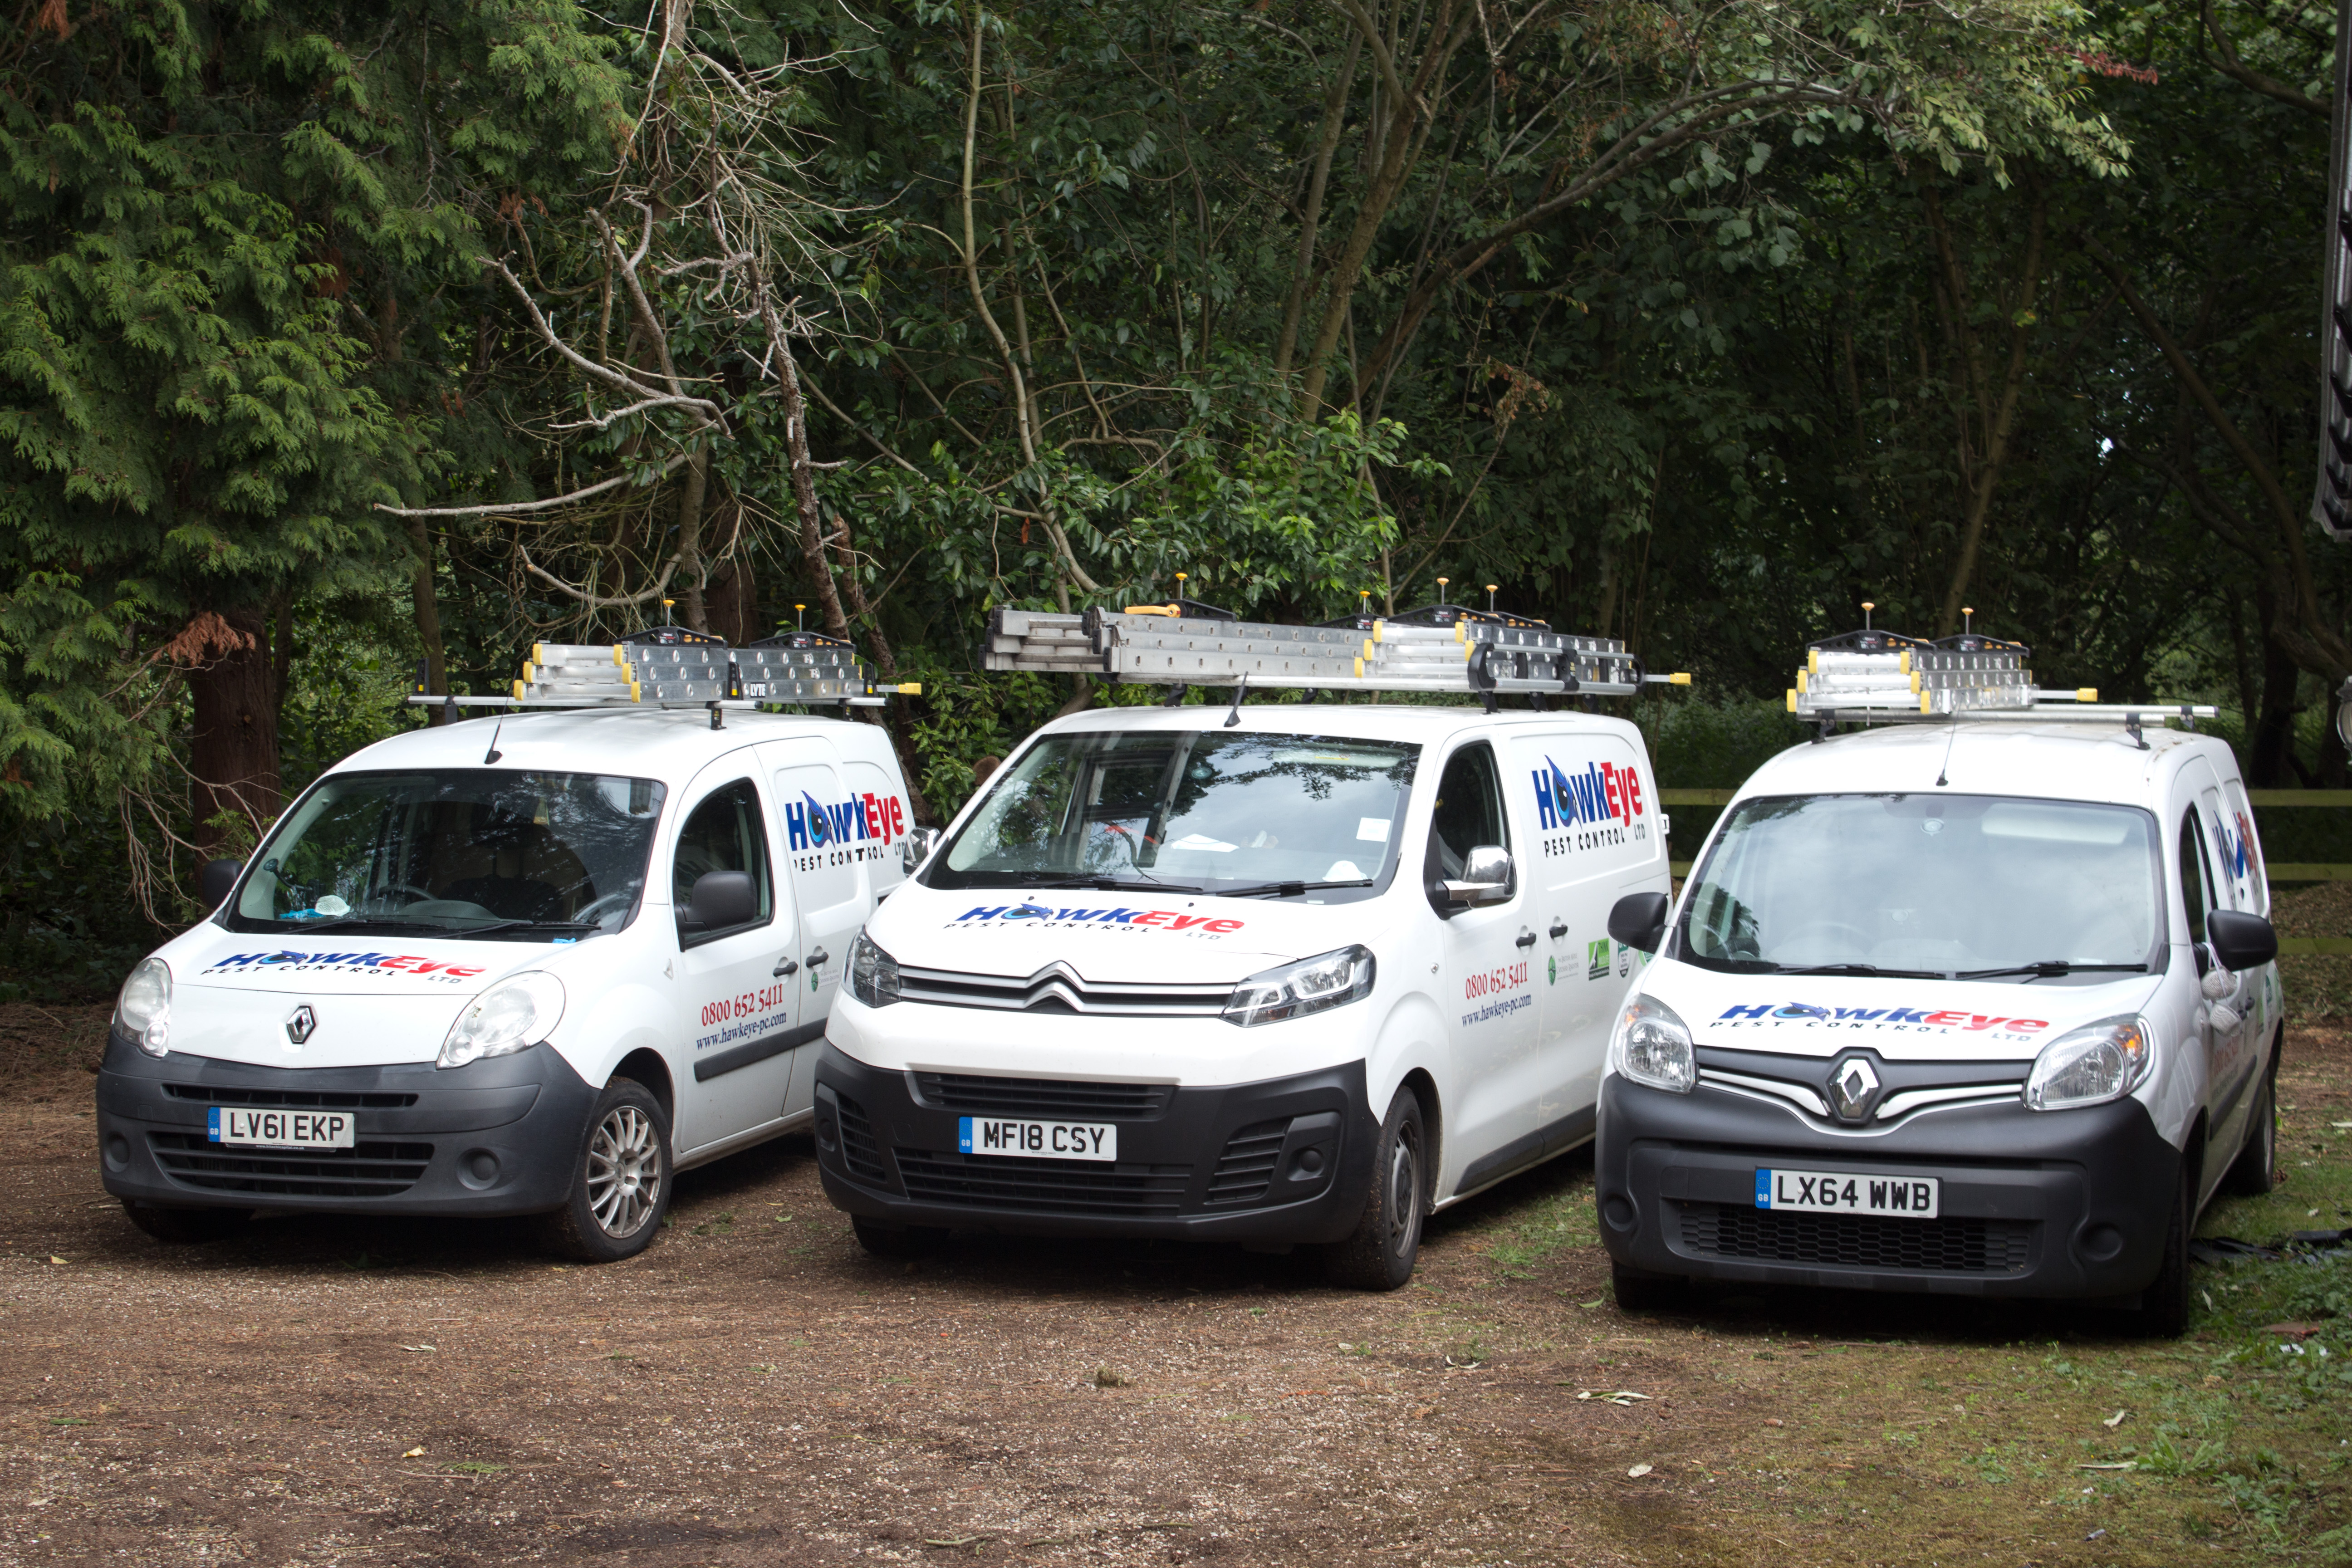 HawkEye fleet of pest control vans